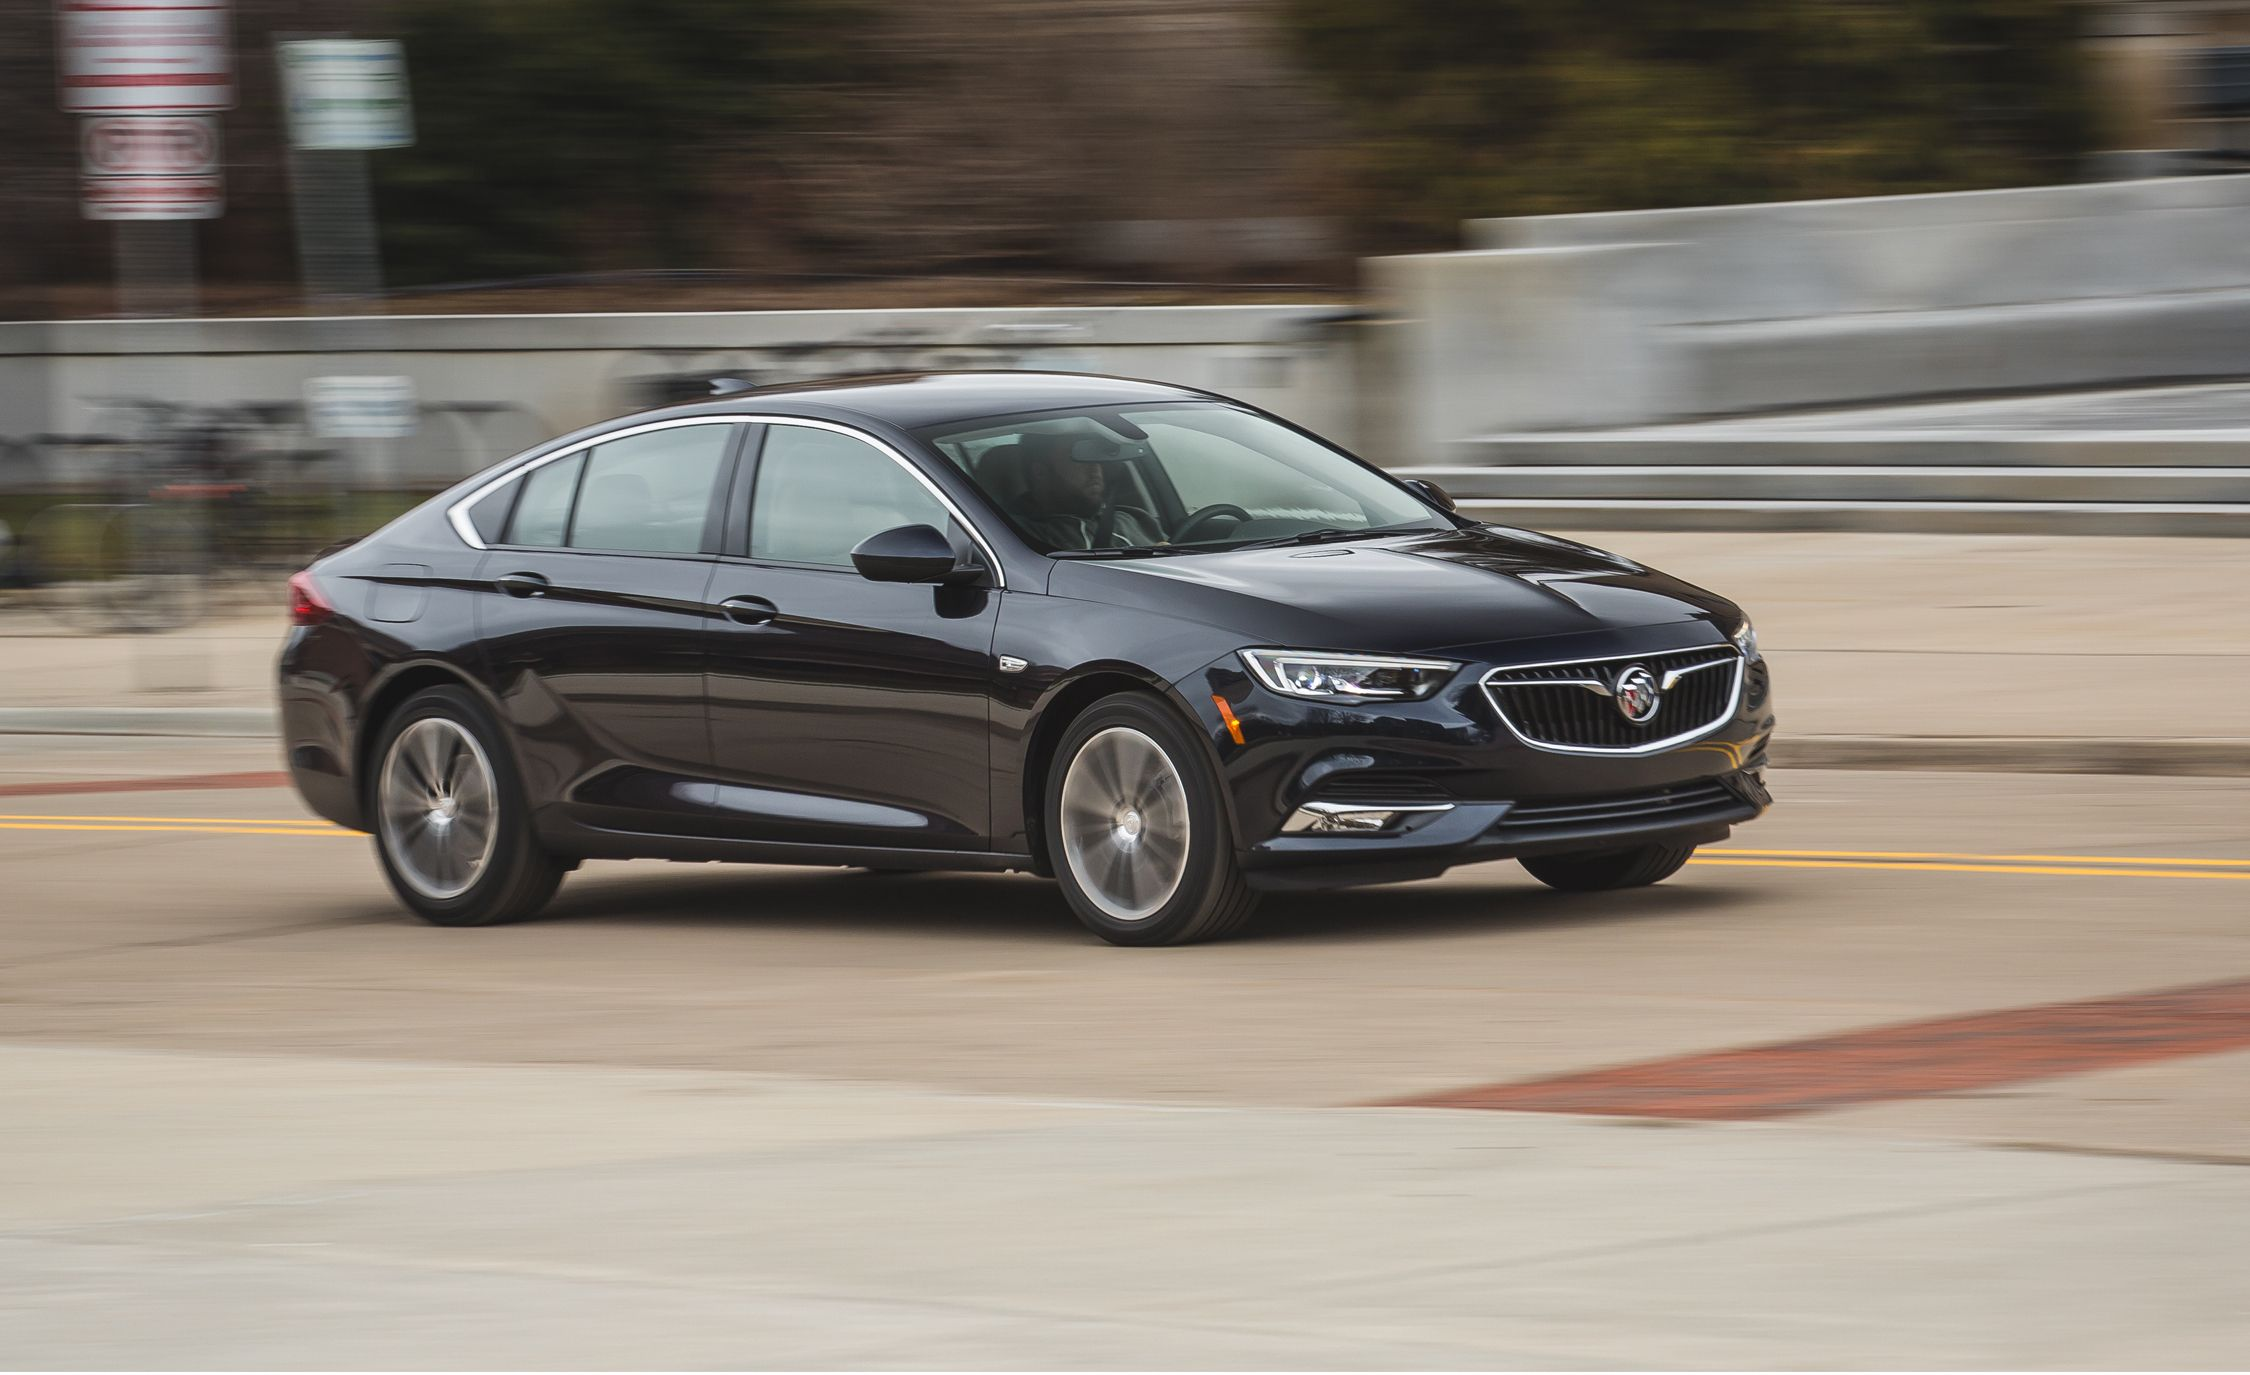 Regal Led Panel 2018 Buick Regal Sportback Fwd Test Review Car And Driver